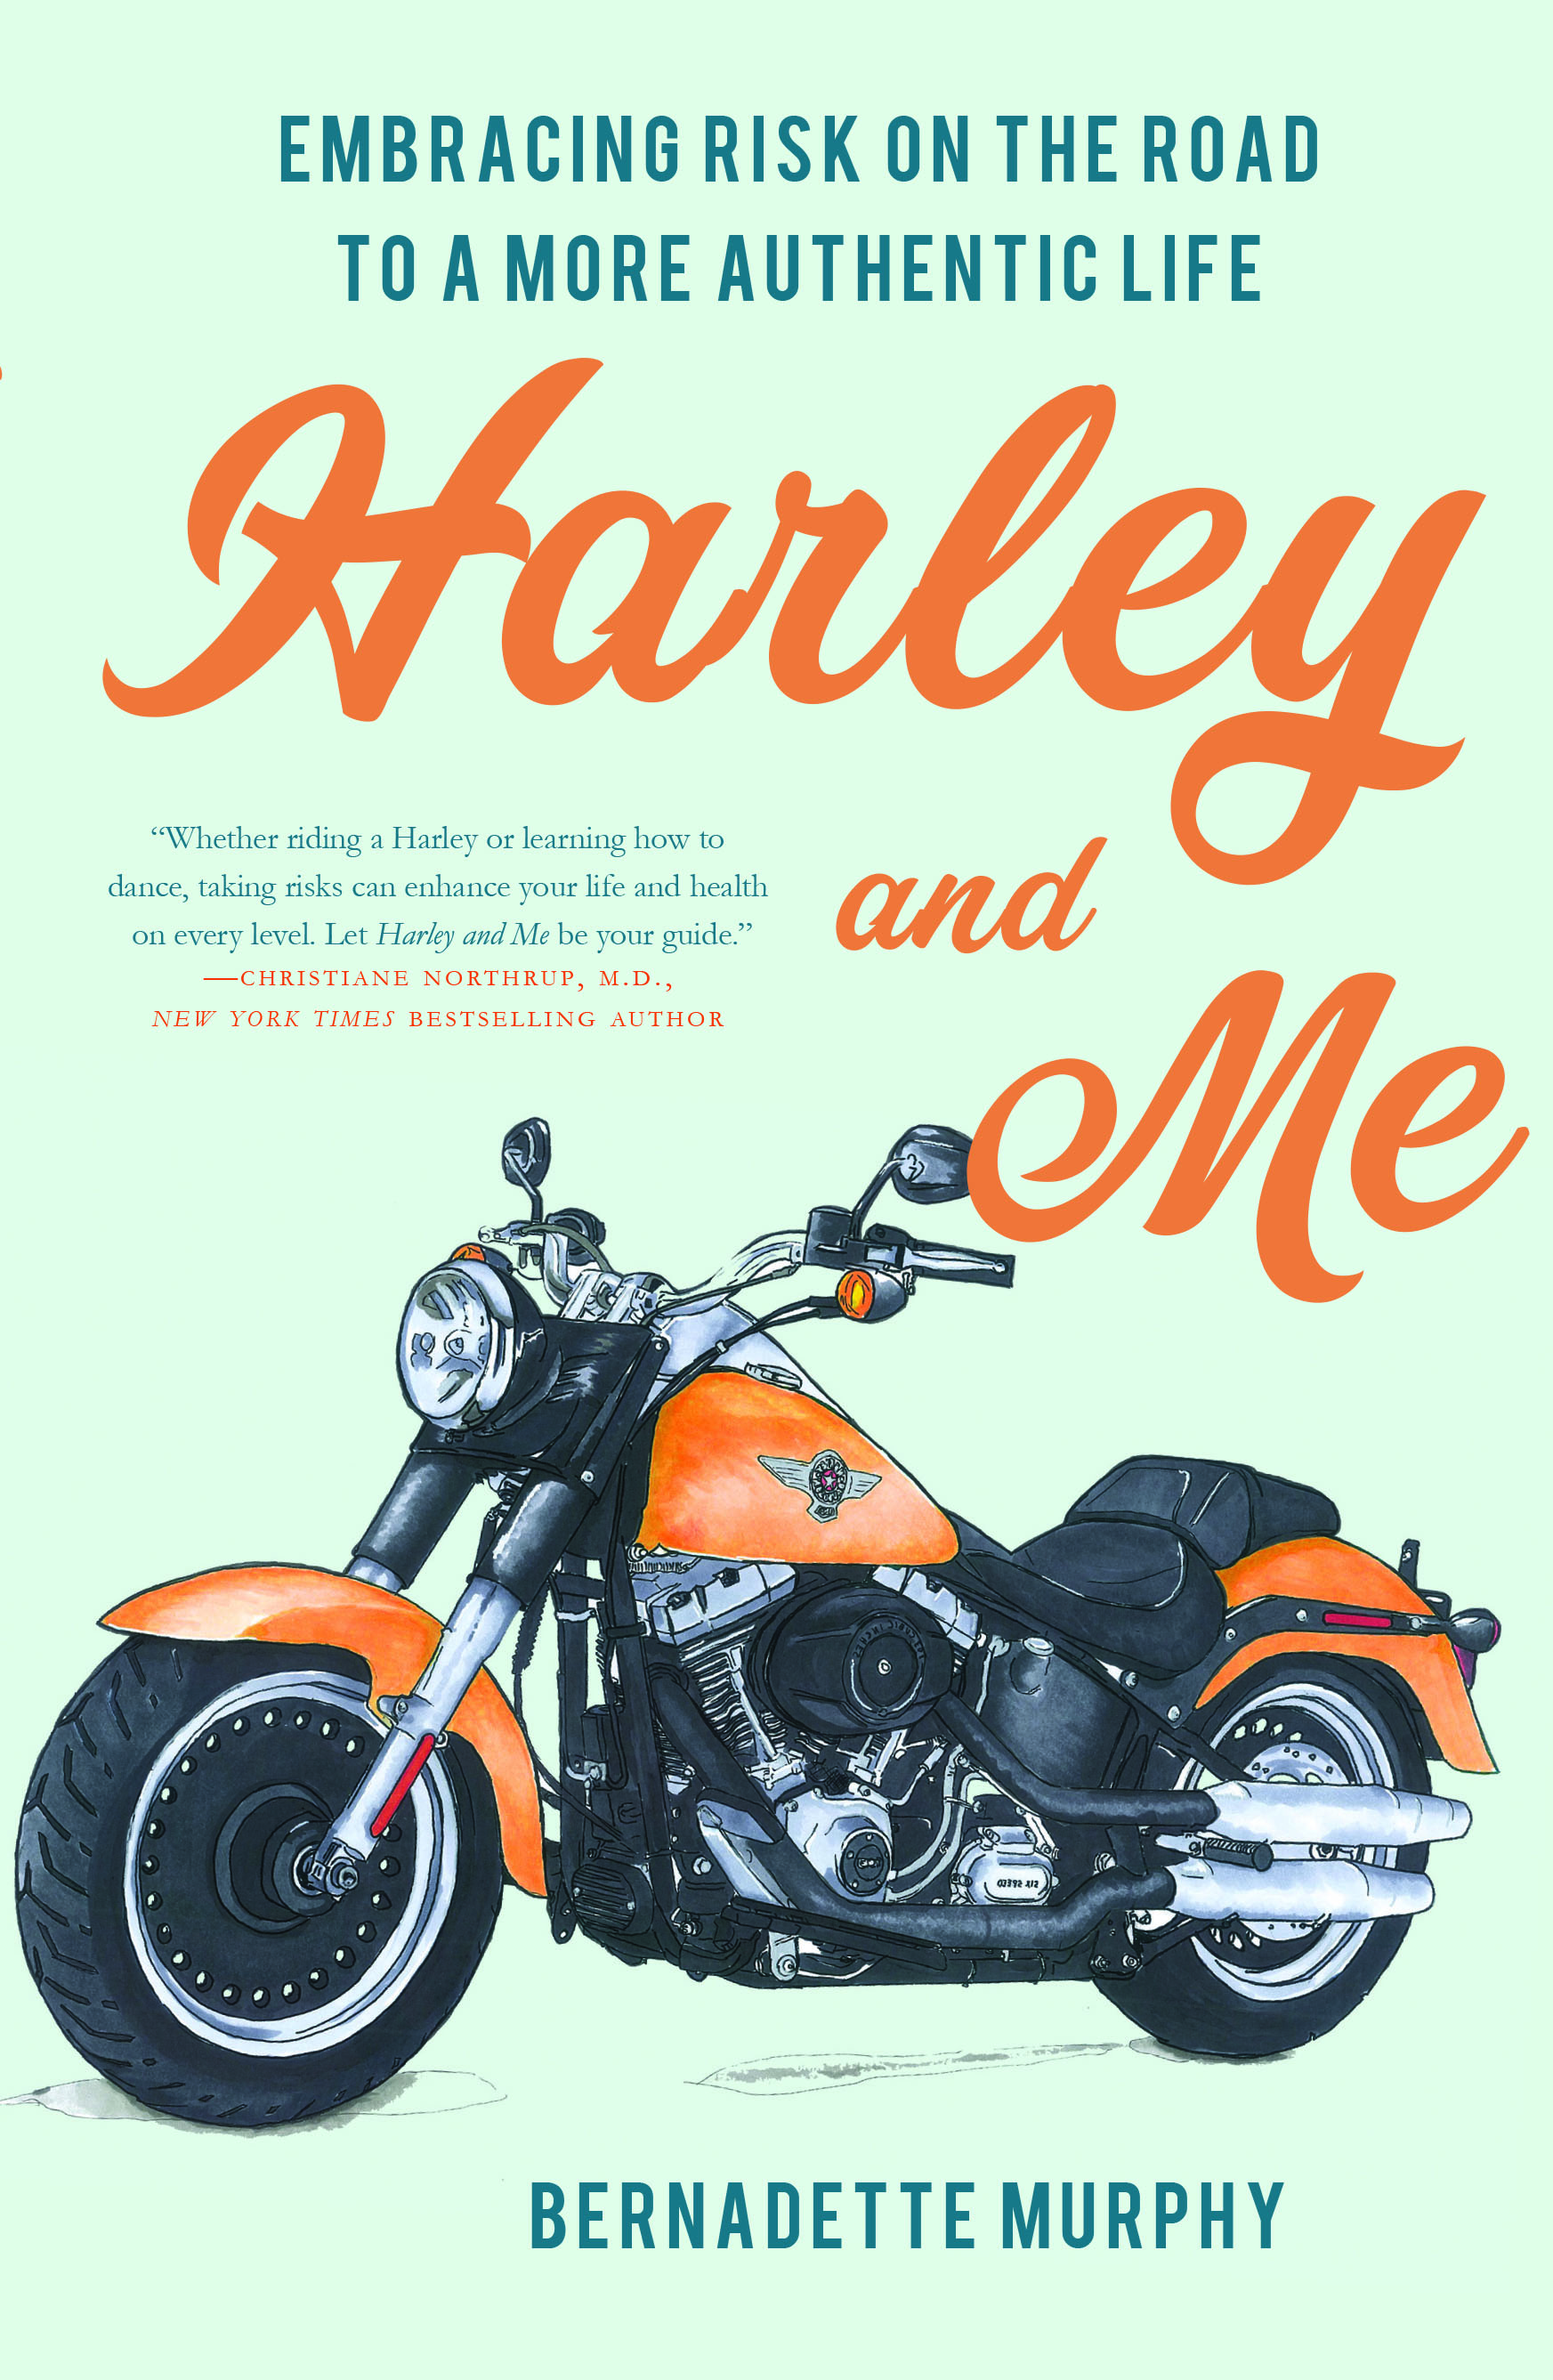 HARLEY AND ME cover image print res (1).jpg